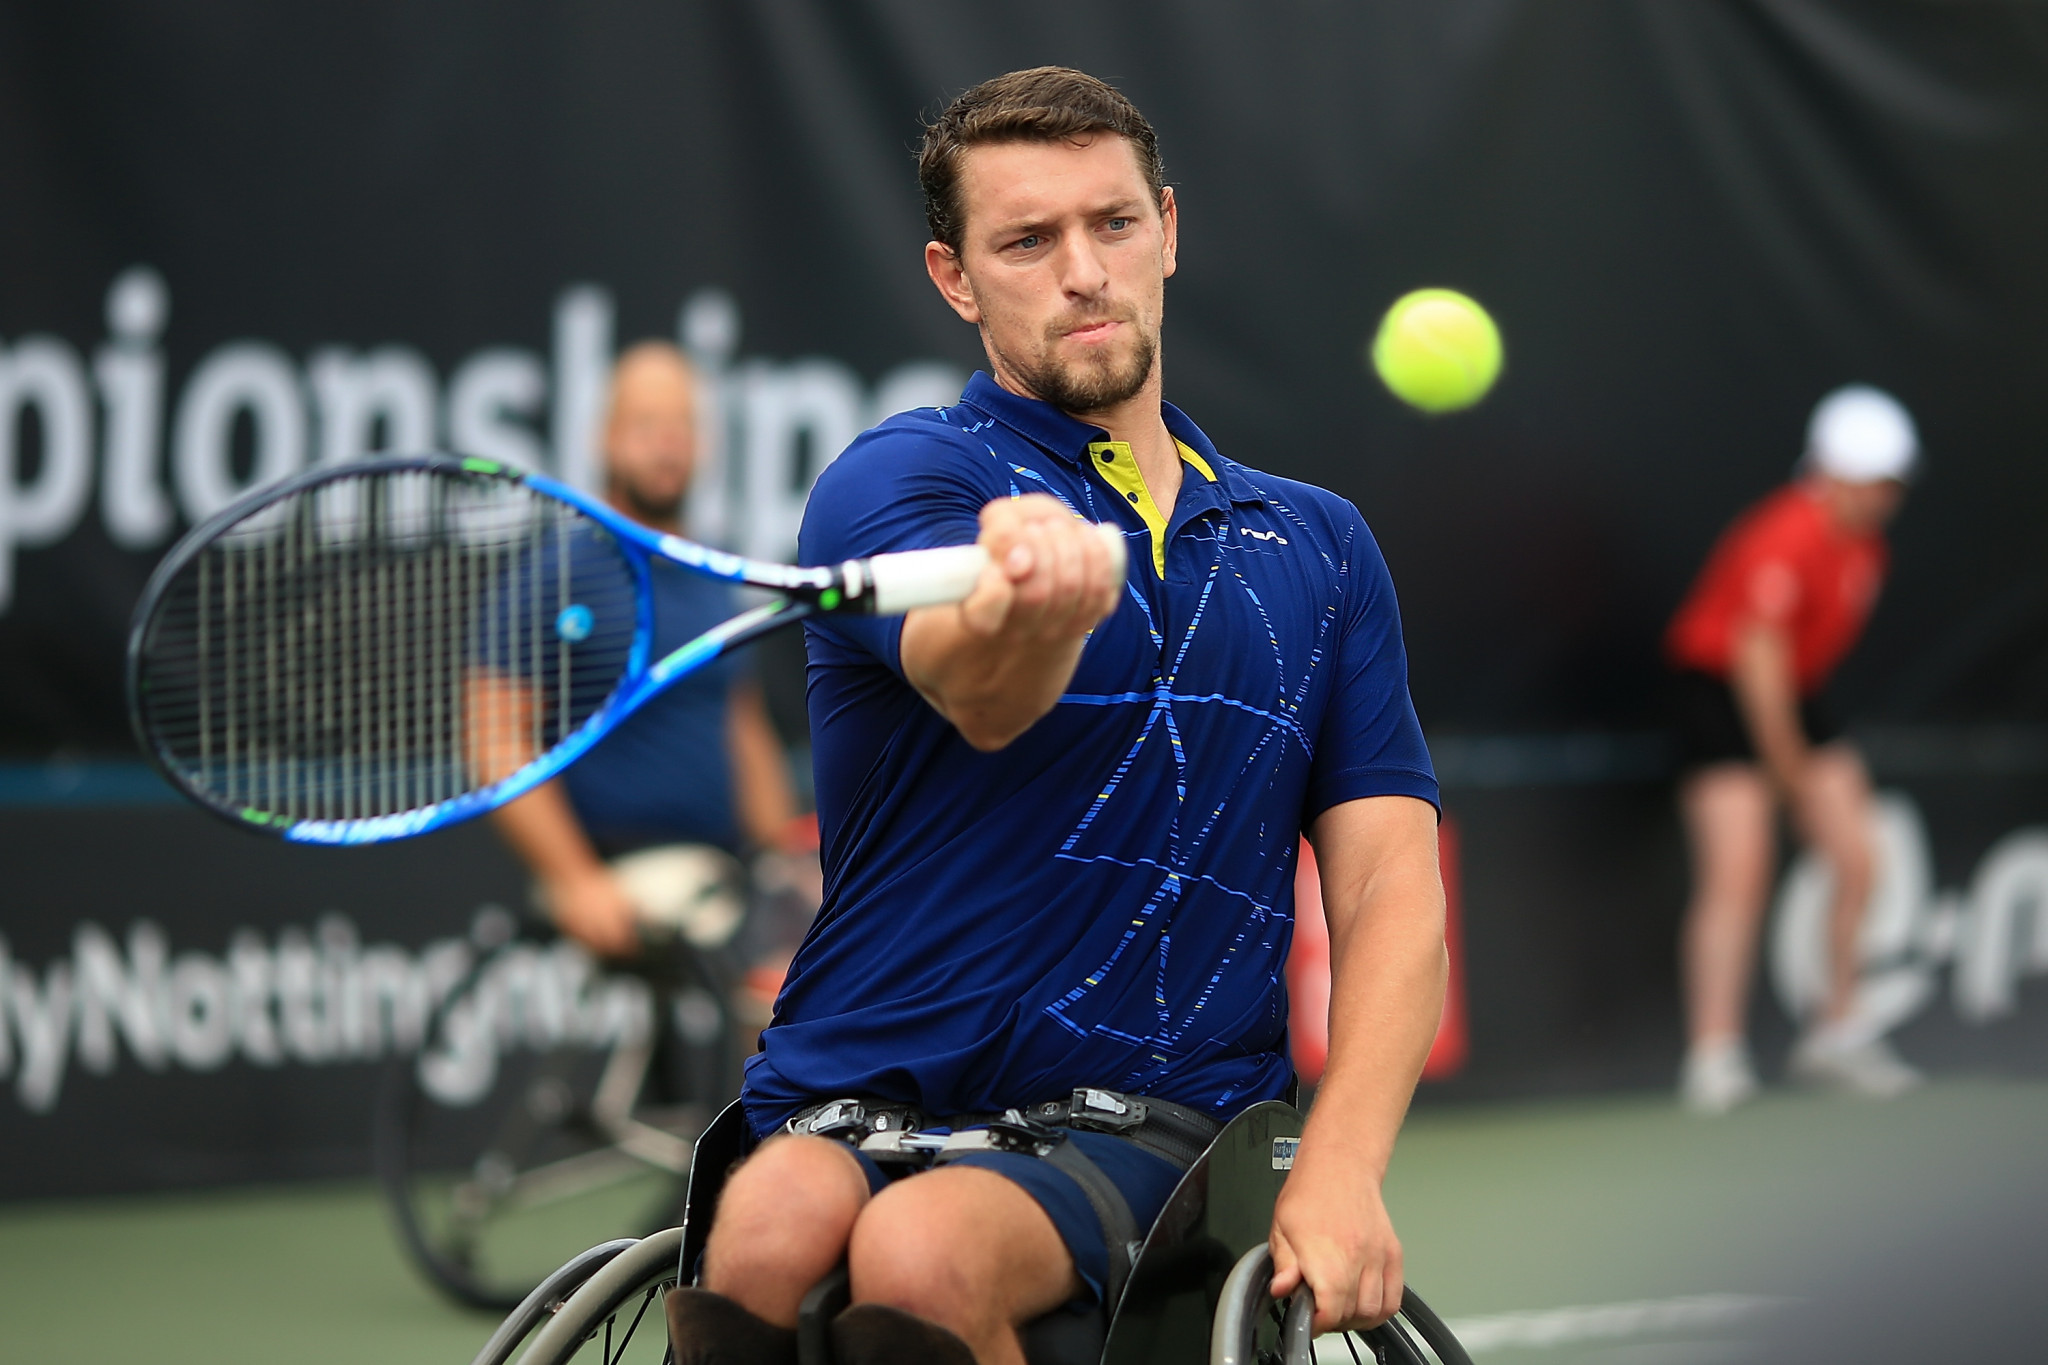 Joachim Gerard will hope for success at his home event ©Getty Images